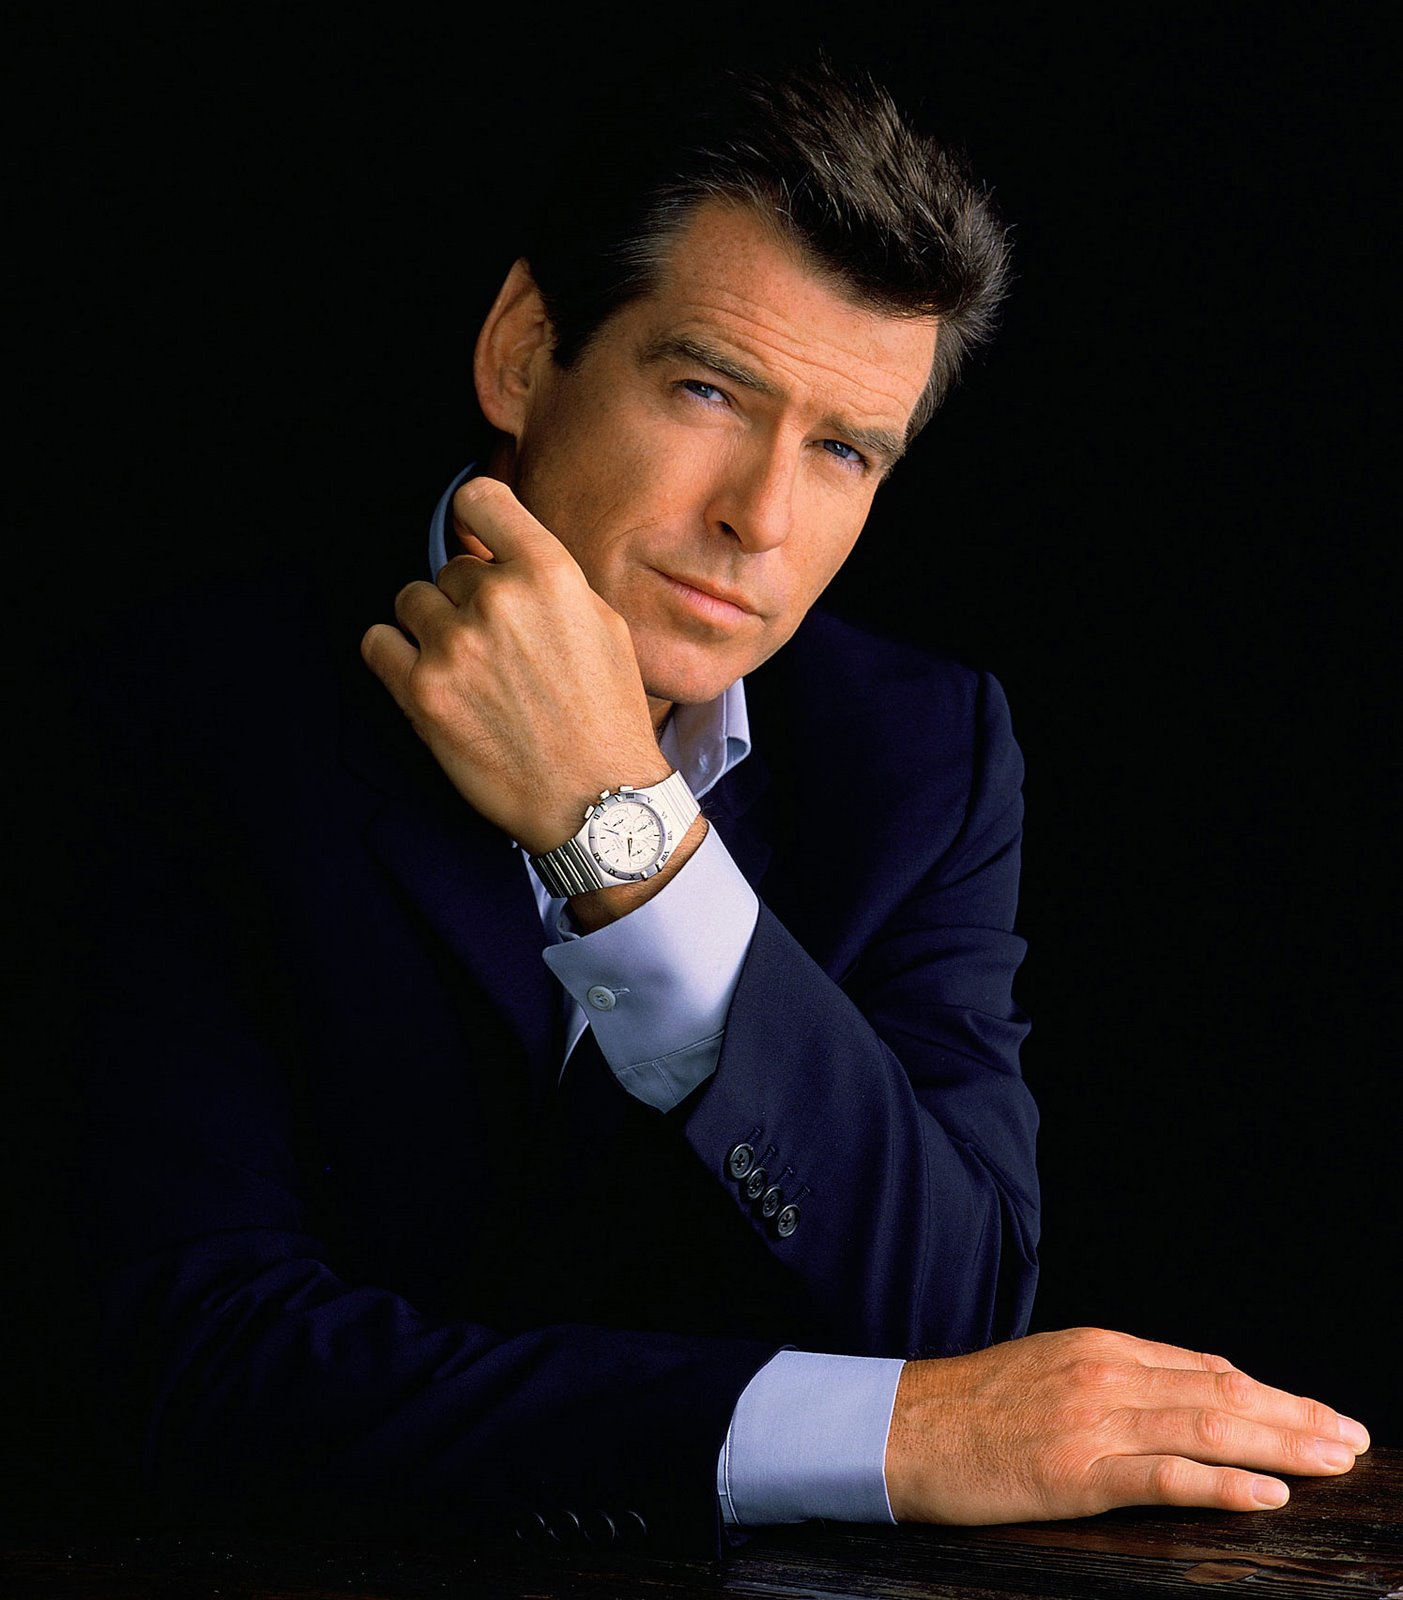 Pierce Brosnan Full hd wallpapers